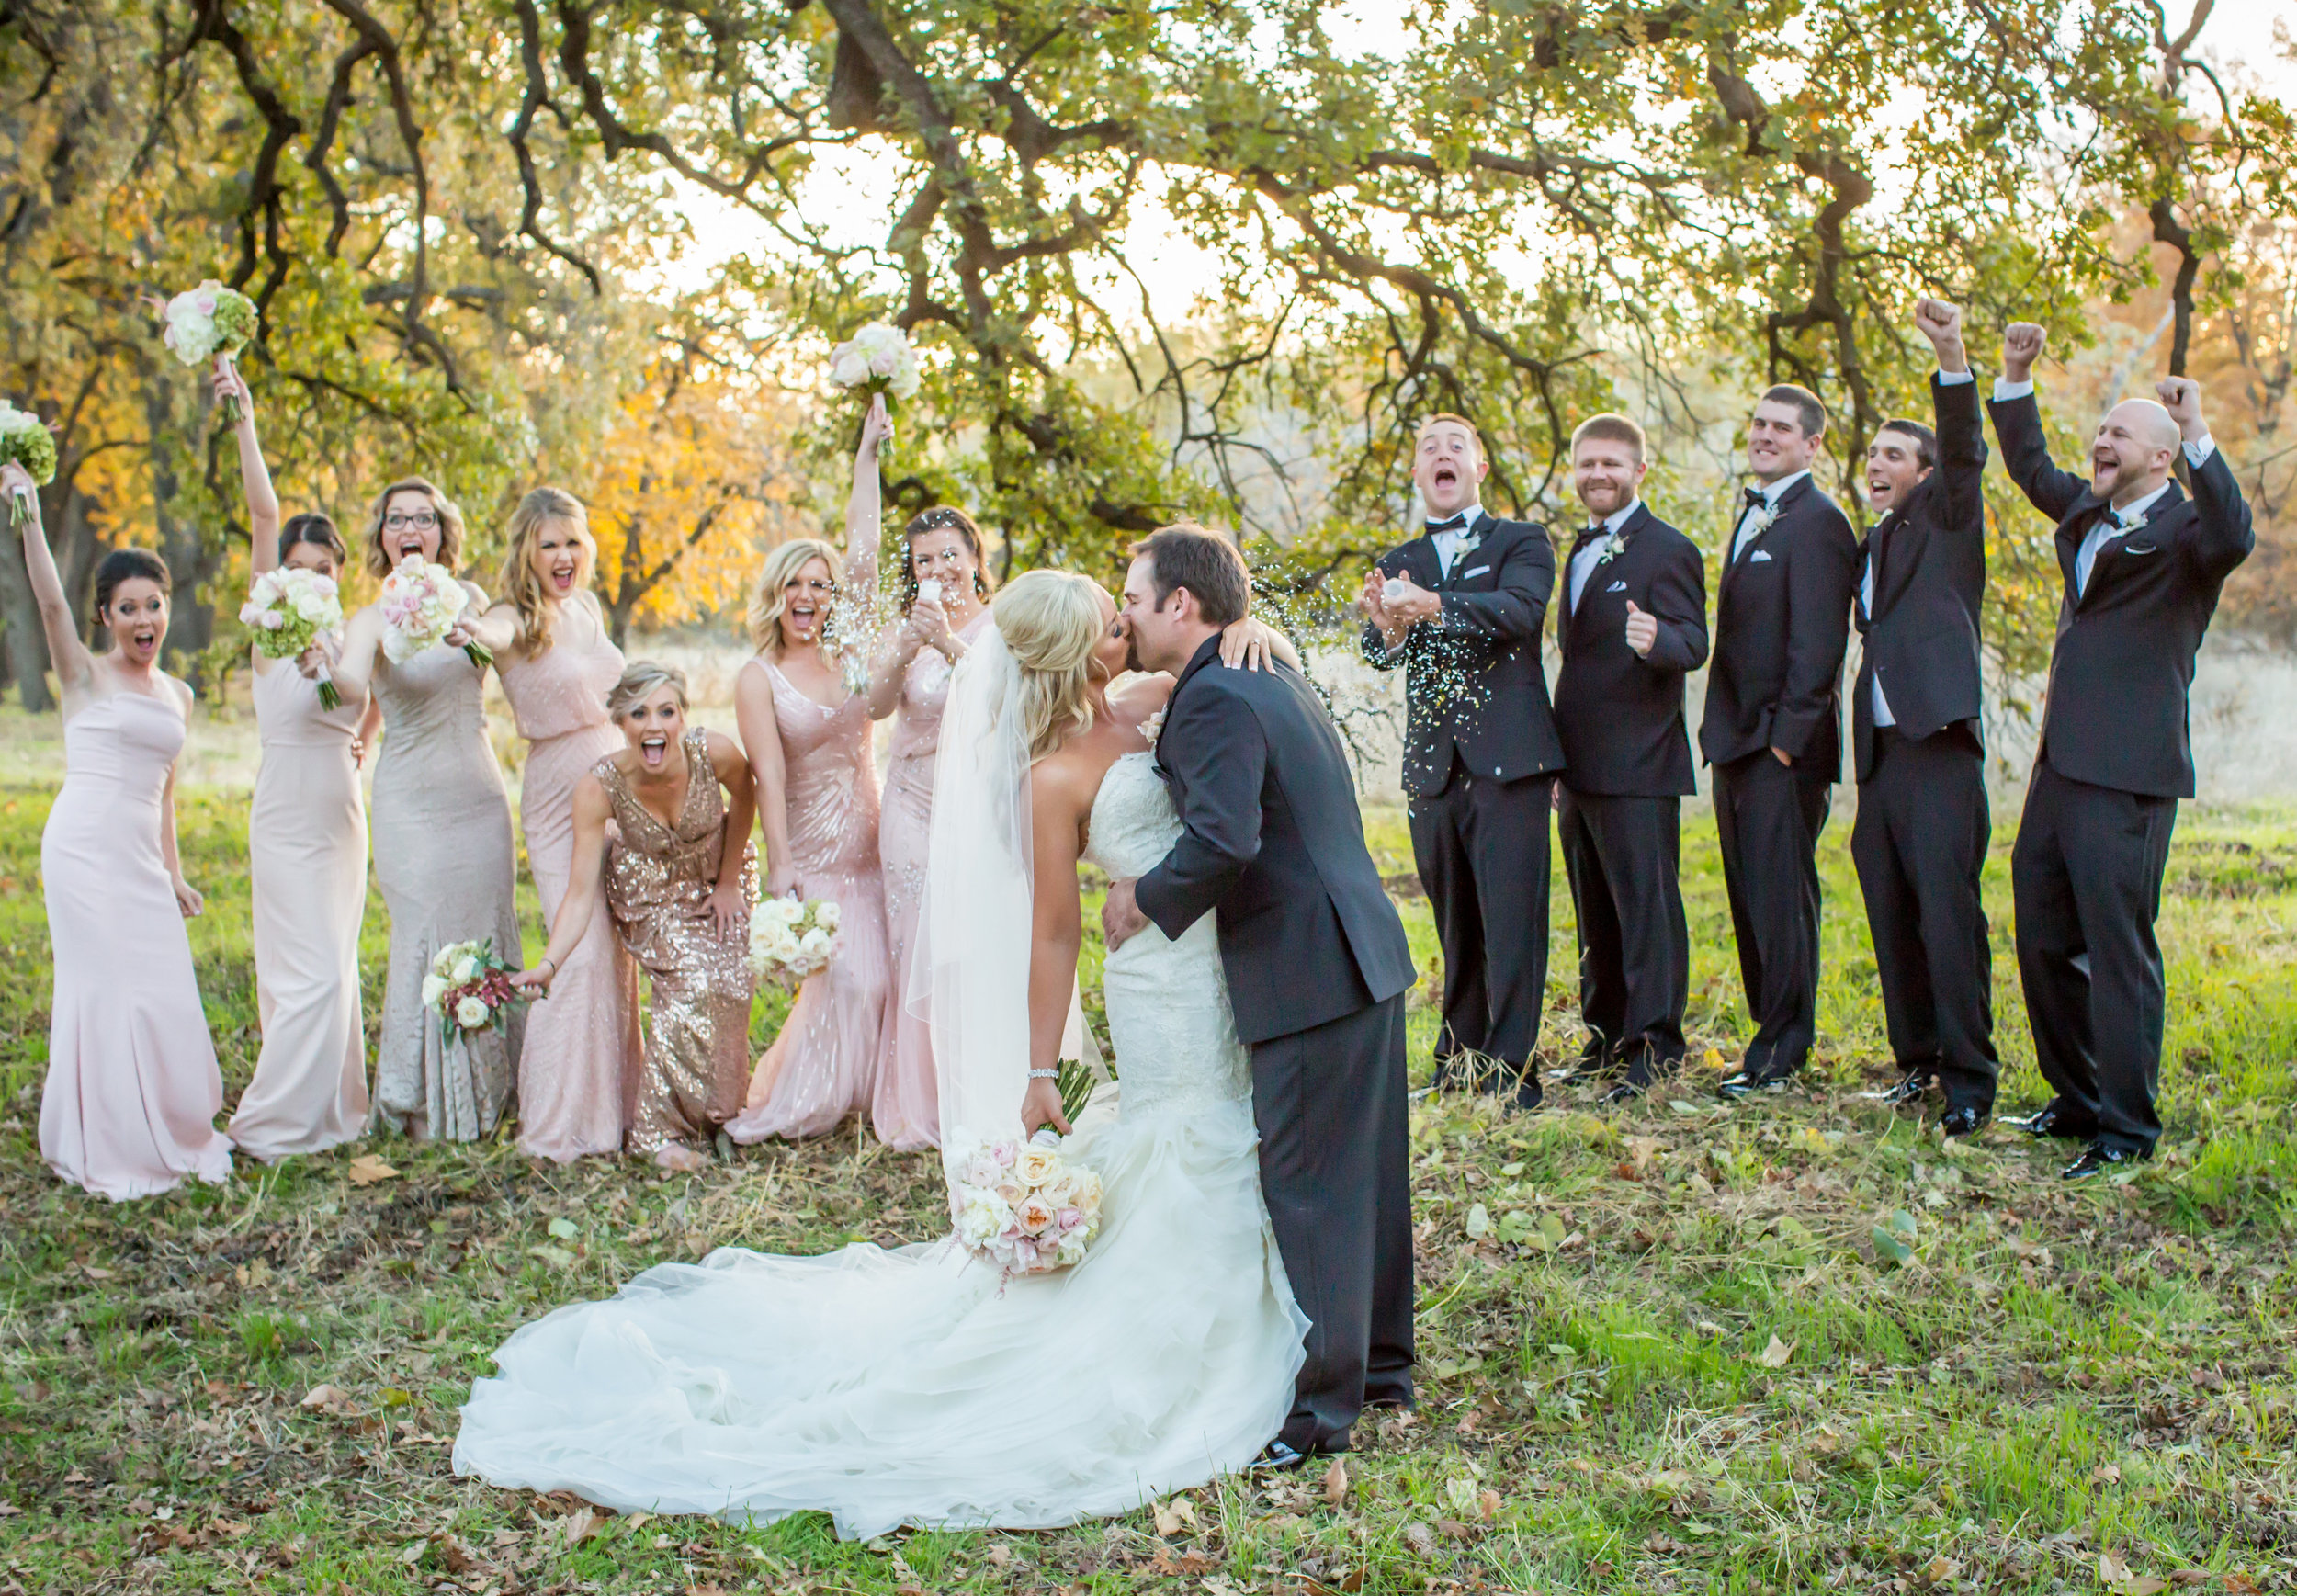 A Chico Event Center Wedding by Katelyn Owens Photography